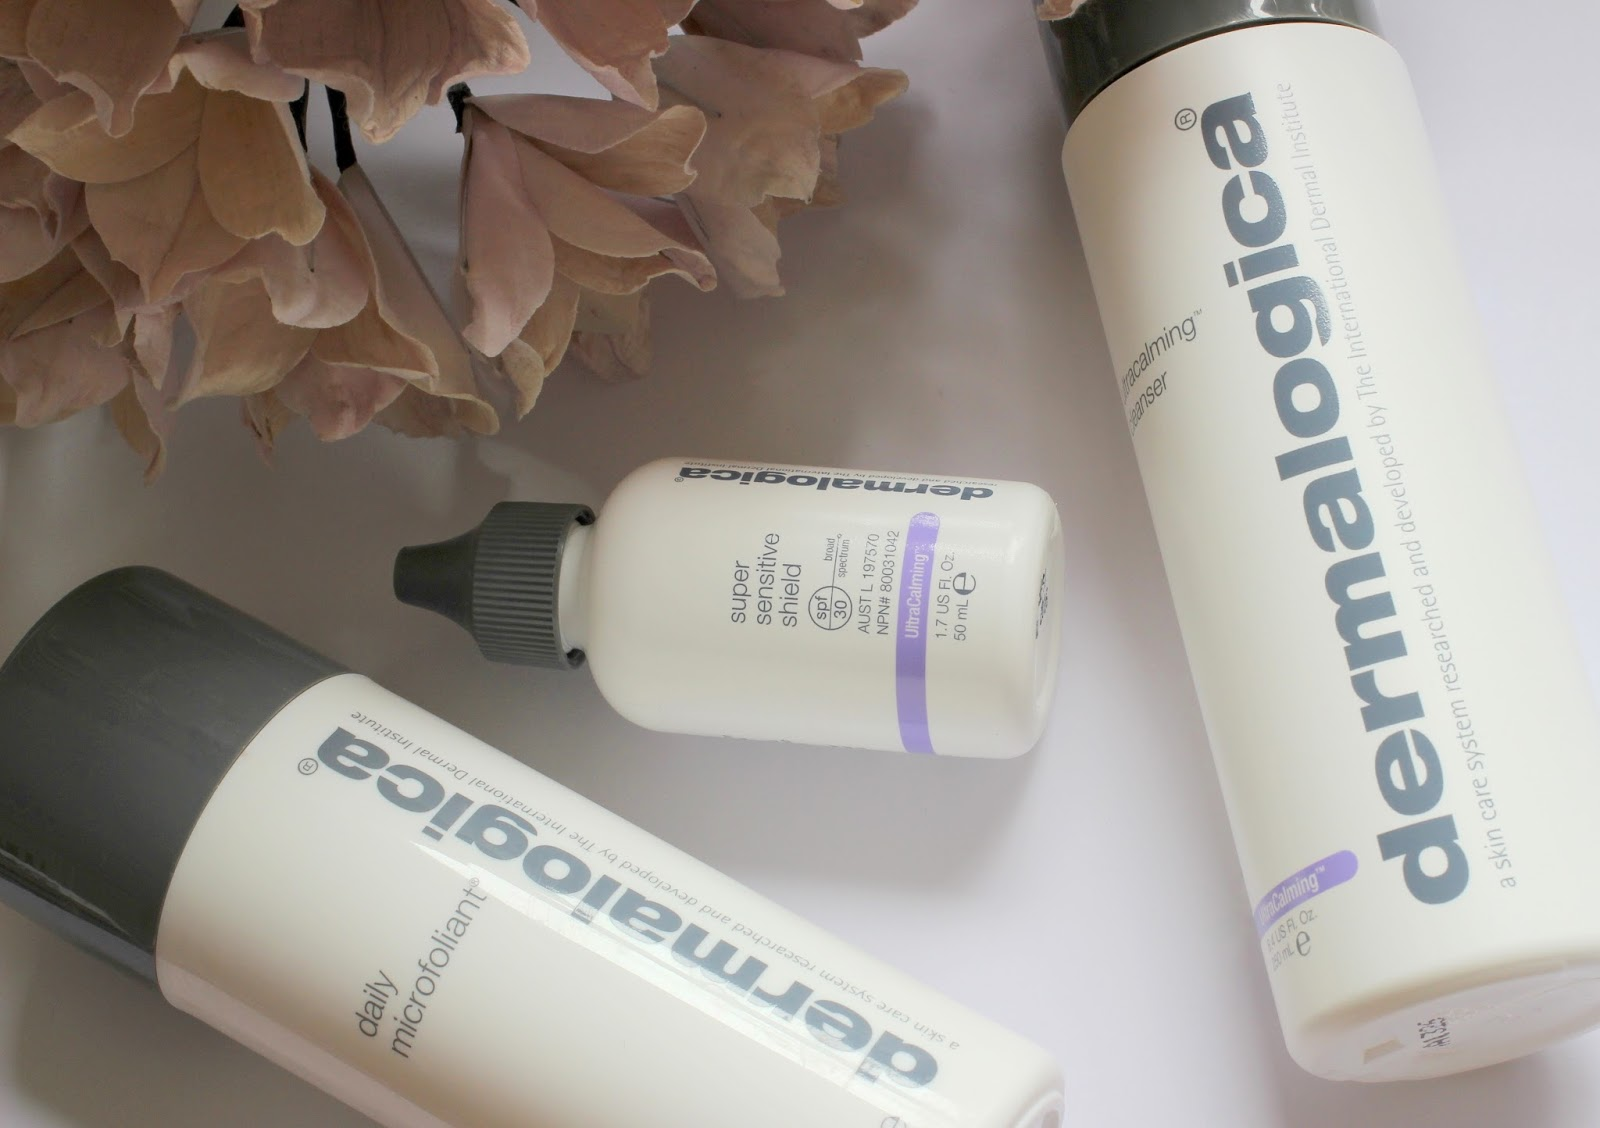 Dermalogica competition